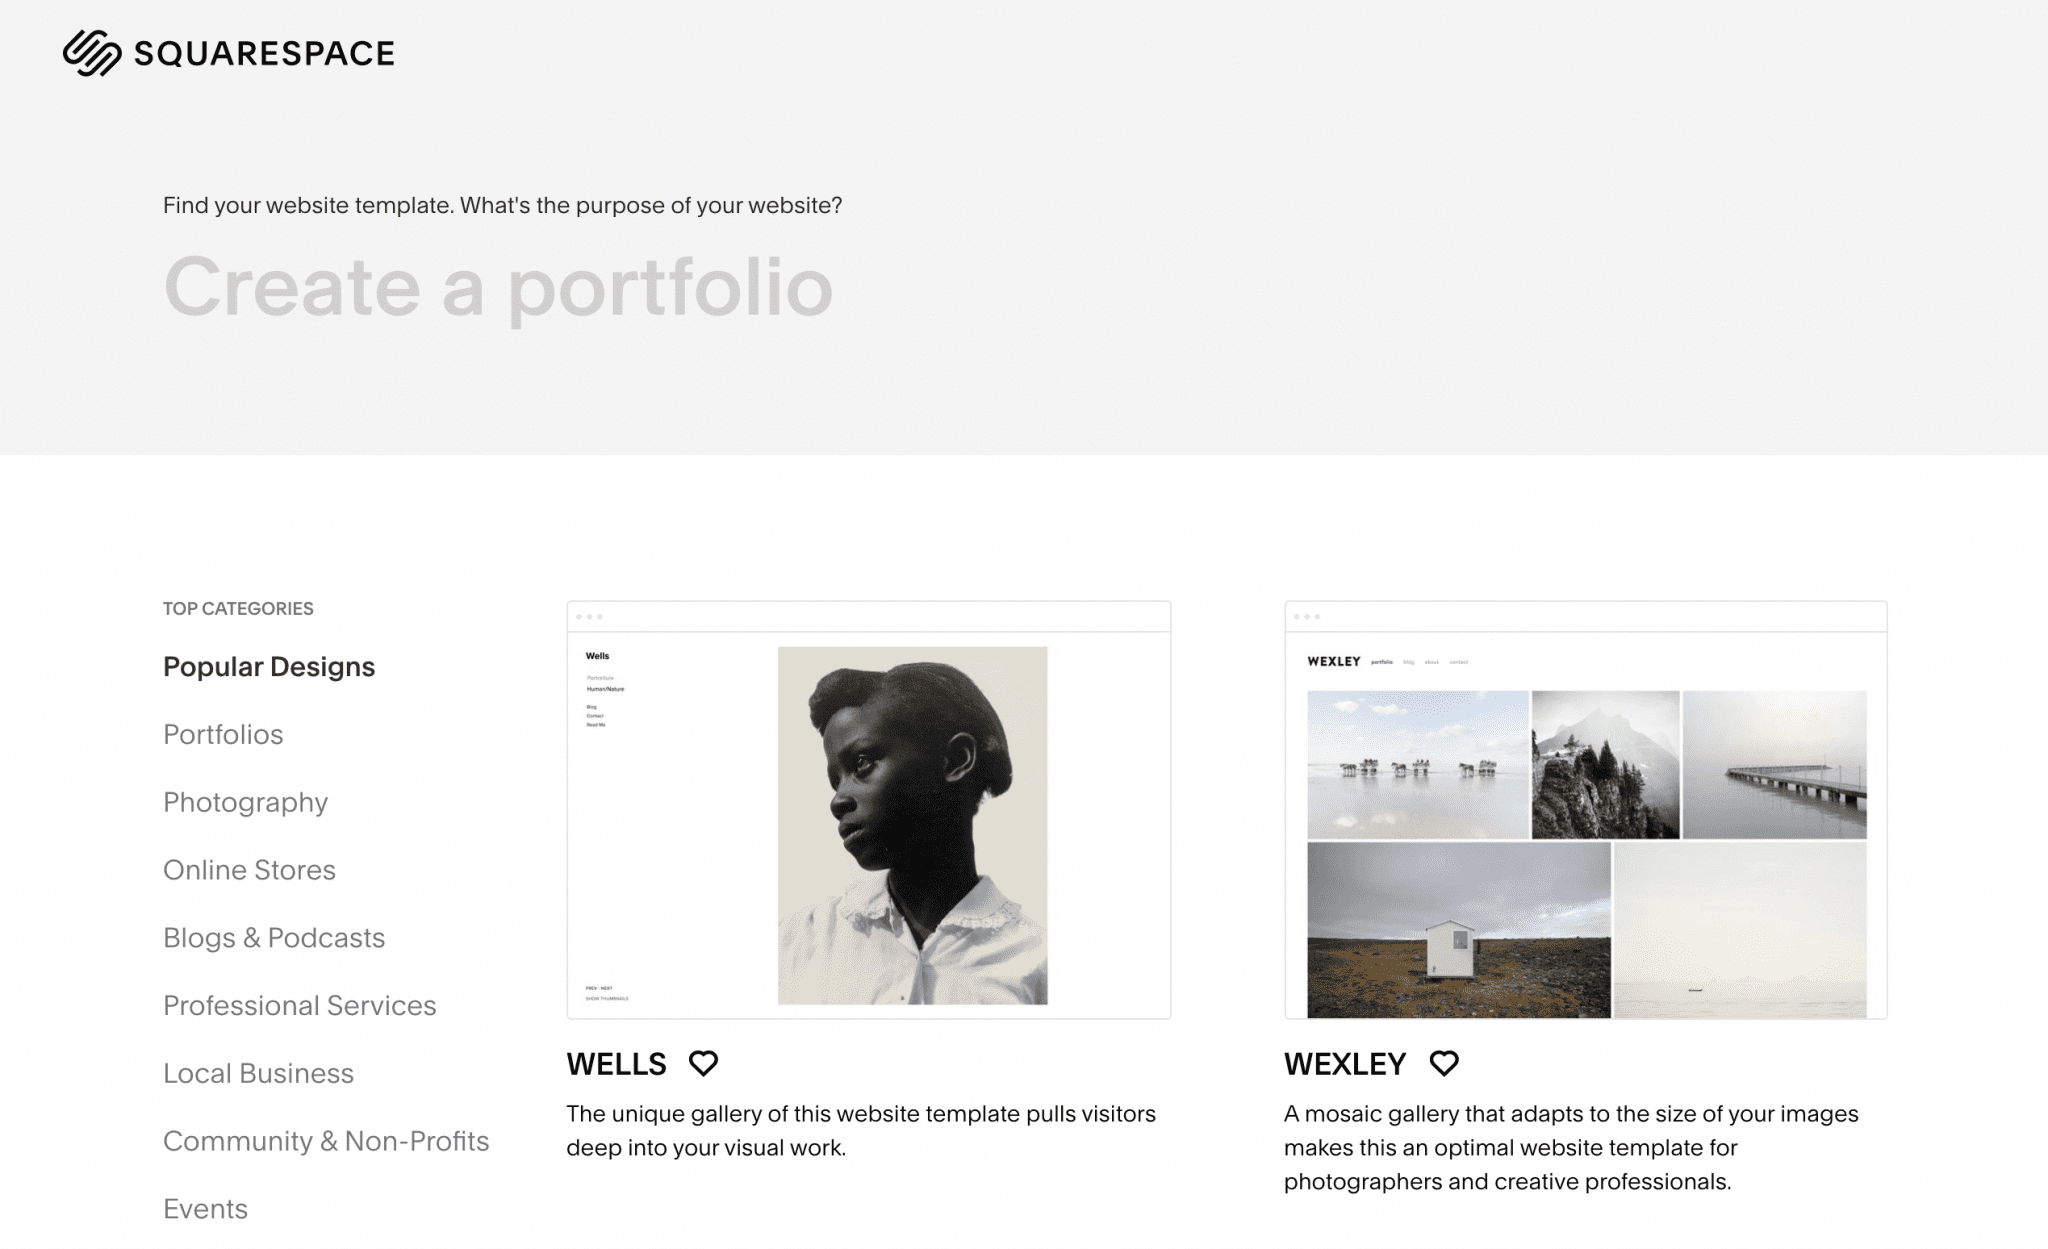 The Squarespace template options.